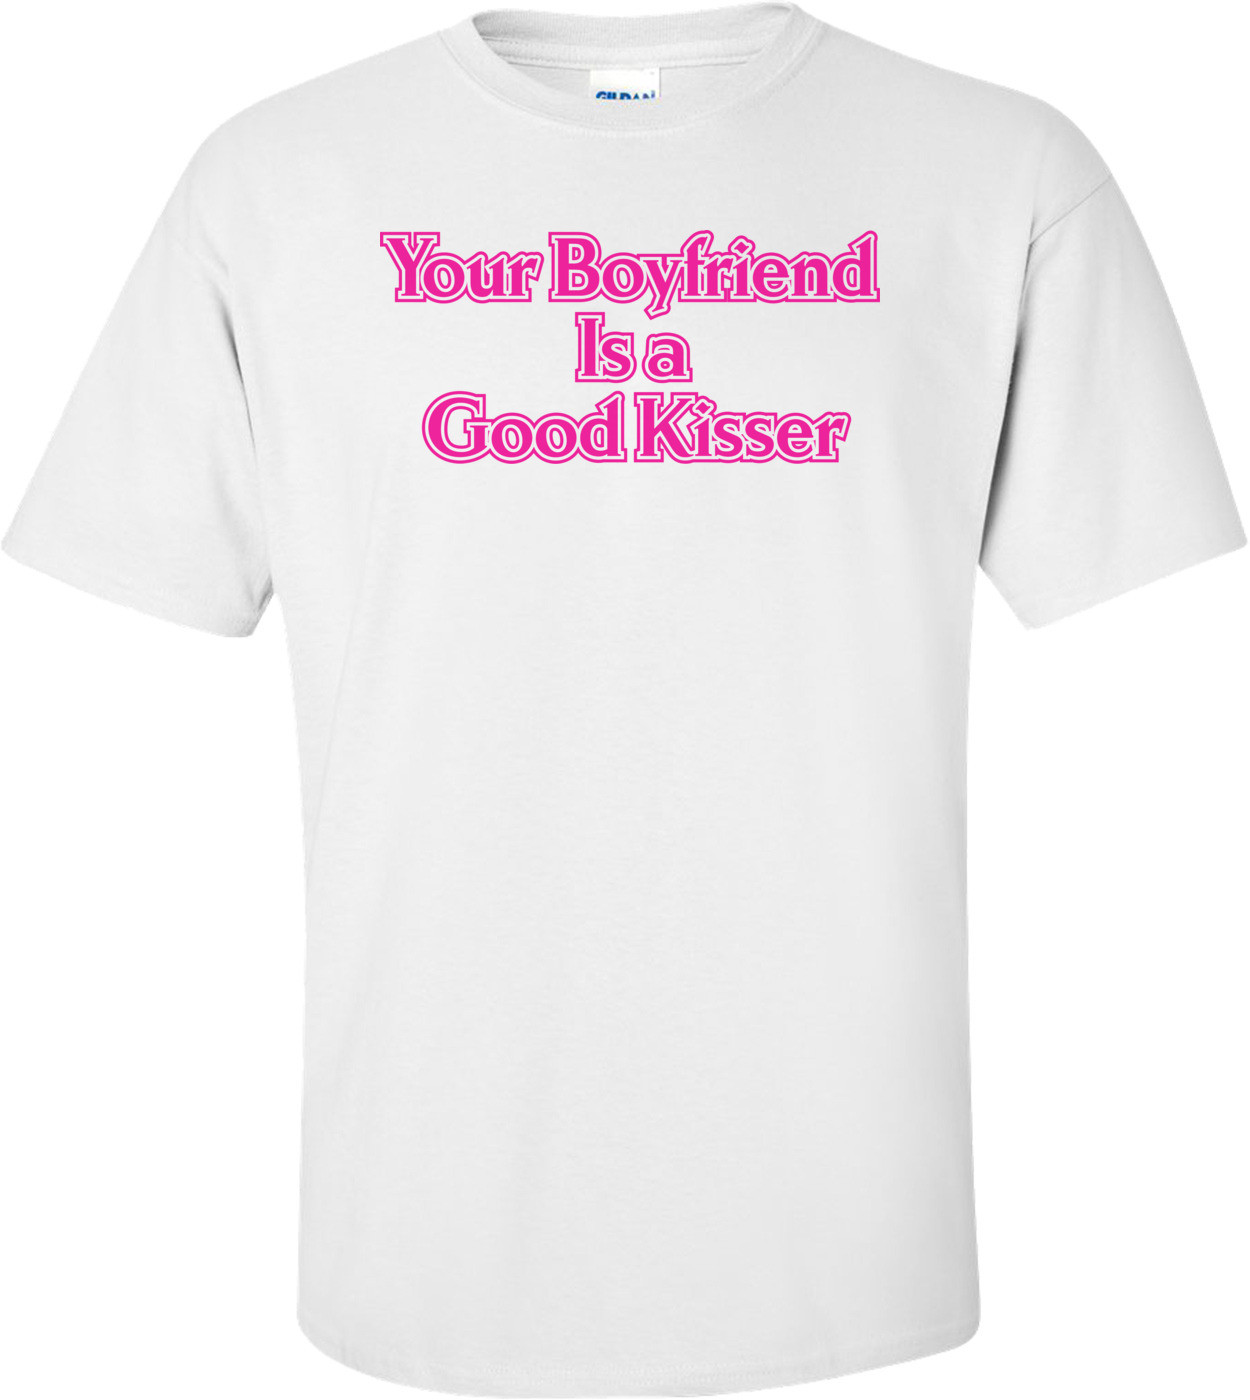 Your Boyfriend Is A Good Kisser T-shirt